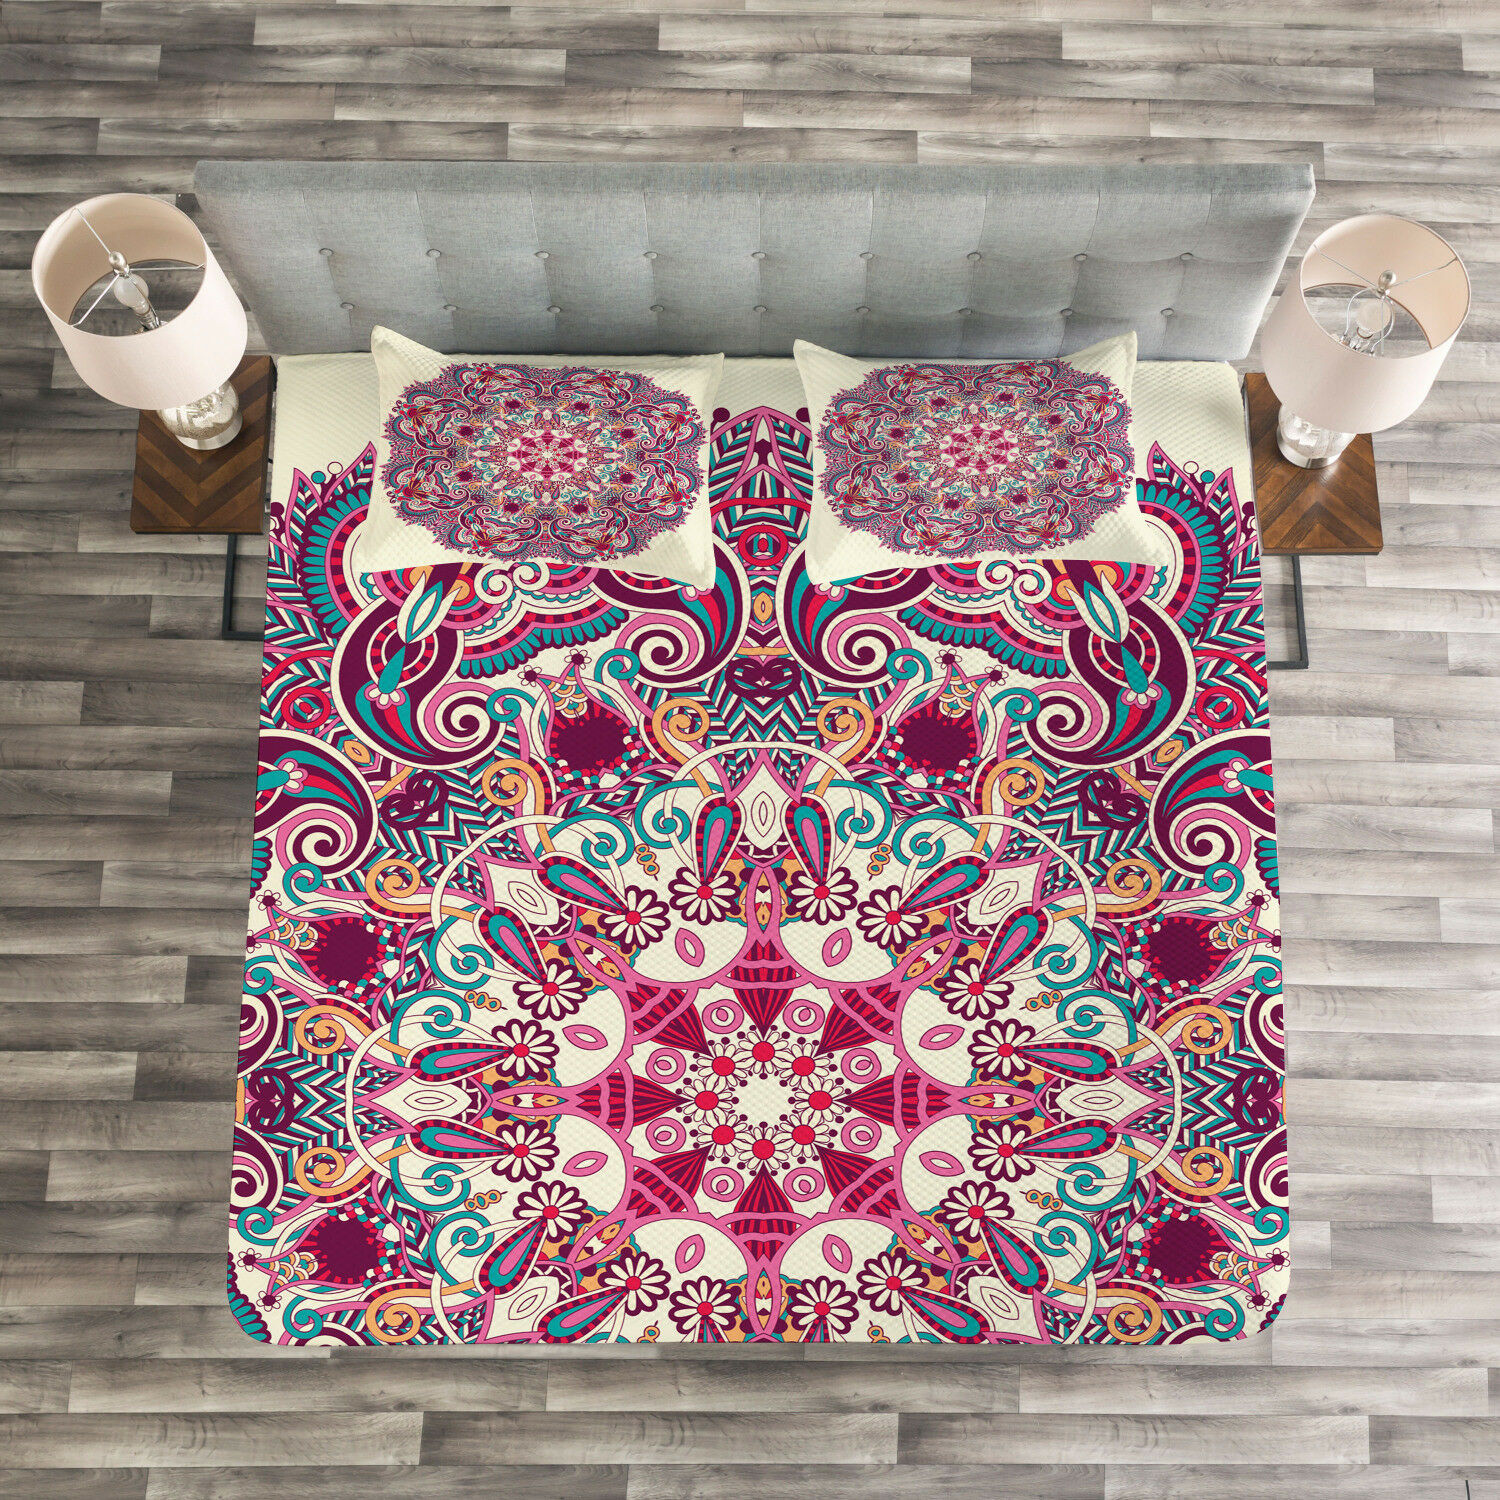 Mandala Quilted Bedspread & Pillow Shams Set, Boho Tribal Floral Print